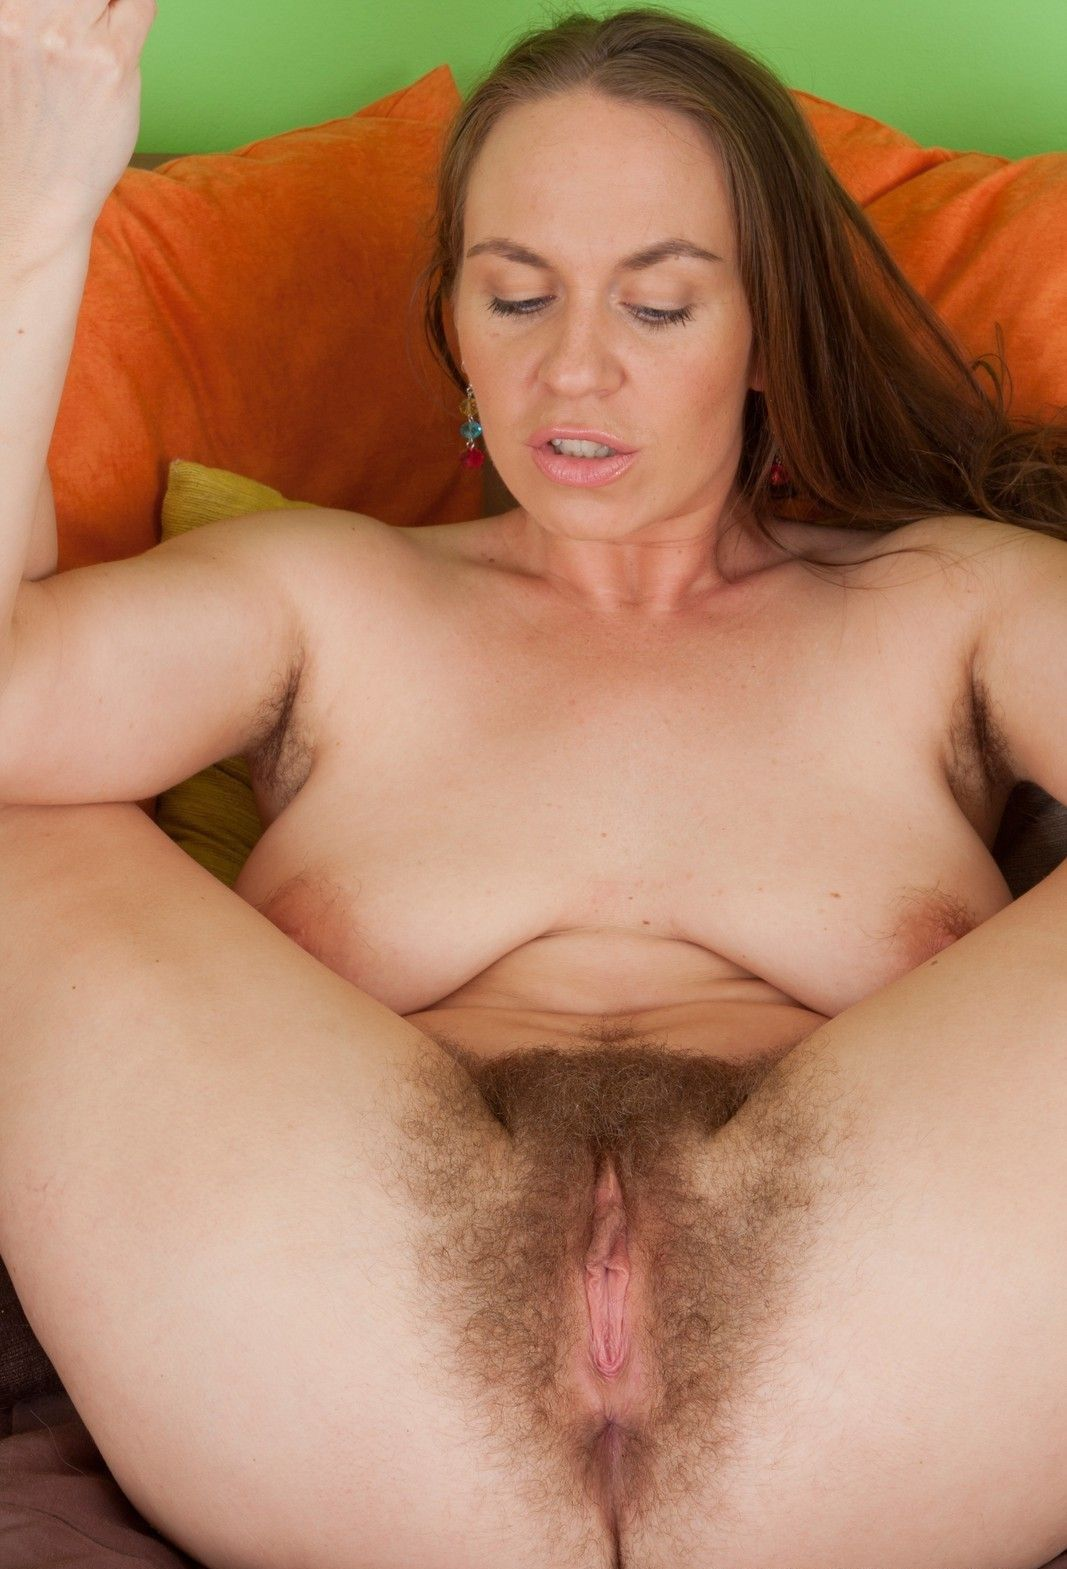 hairy nipples Big tits with